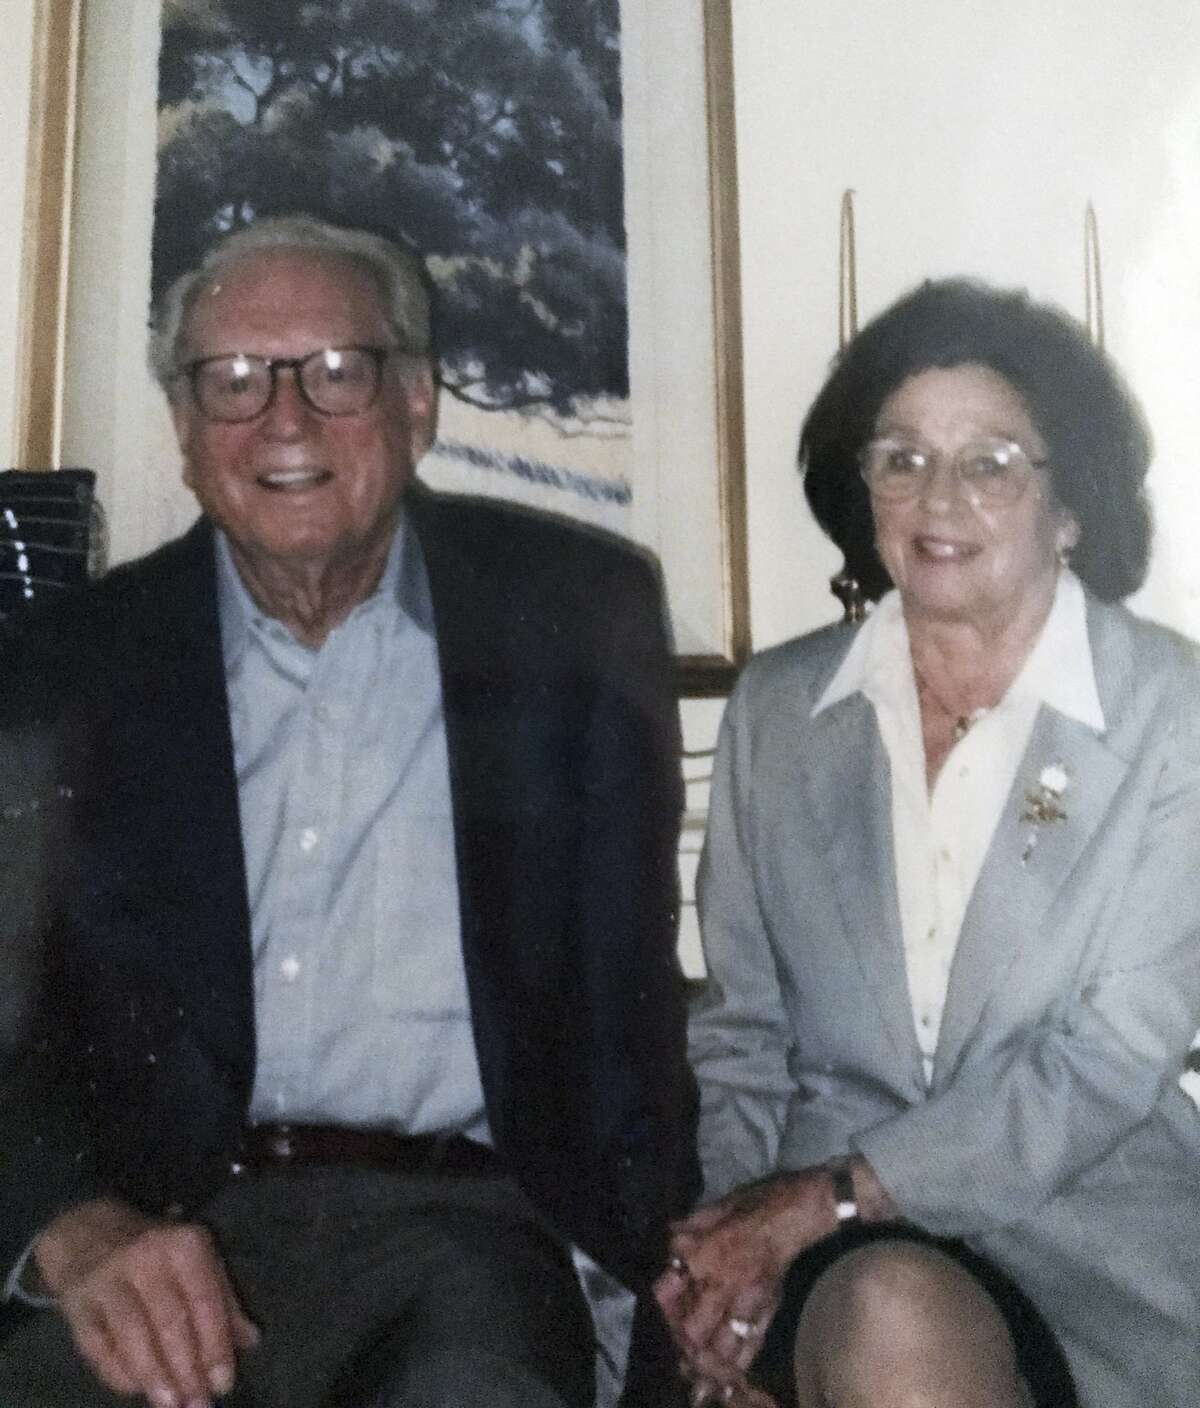 This undated photo provided by their son Michael Rippey shows Charles and Sara Rippey. Charles, 100, and Sara, 98, were unable to leave their Napa, Calif., home, and died when the Tubbs fire swept through. Their bodies were found Monday, Oct. 9, 2017. (Courtesy Michael Rippey via AP)